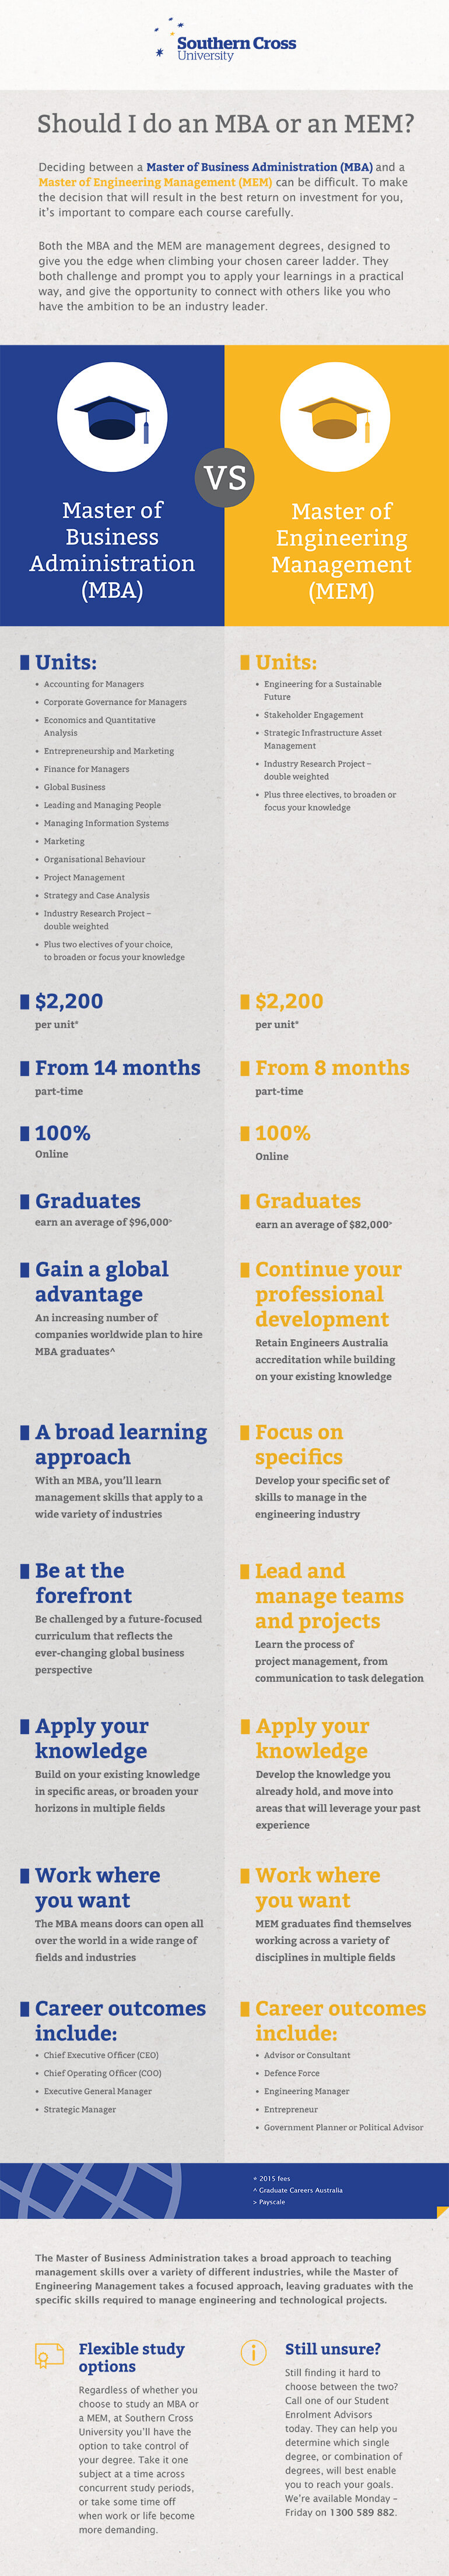 Infographic: MBA vs MEM - what's the difference?